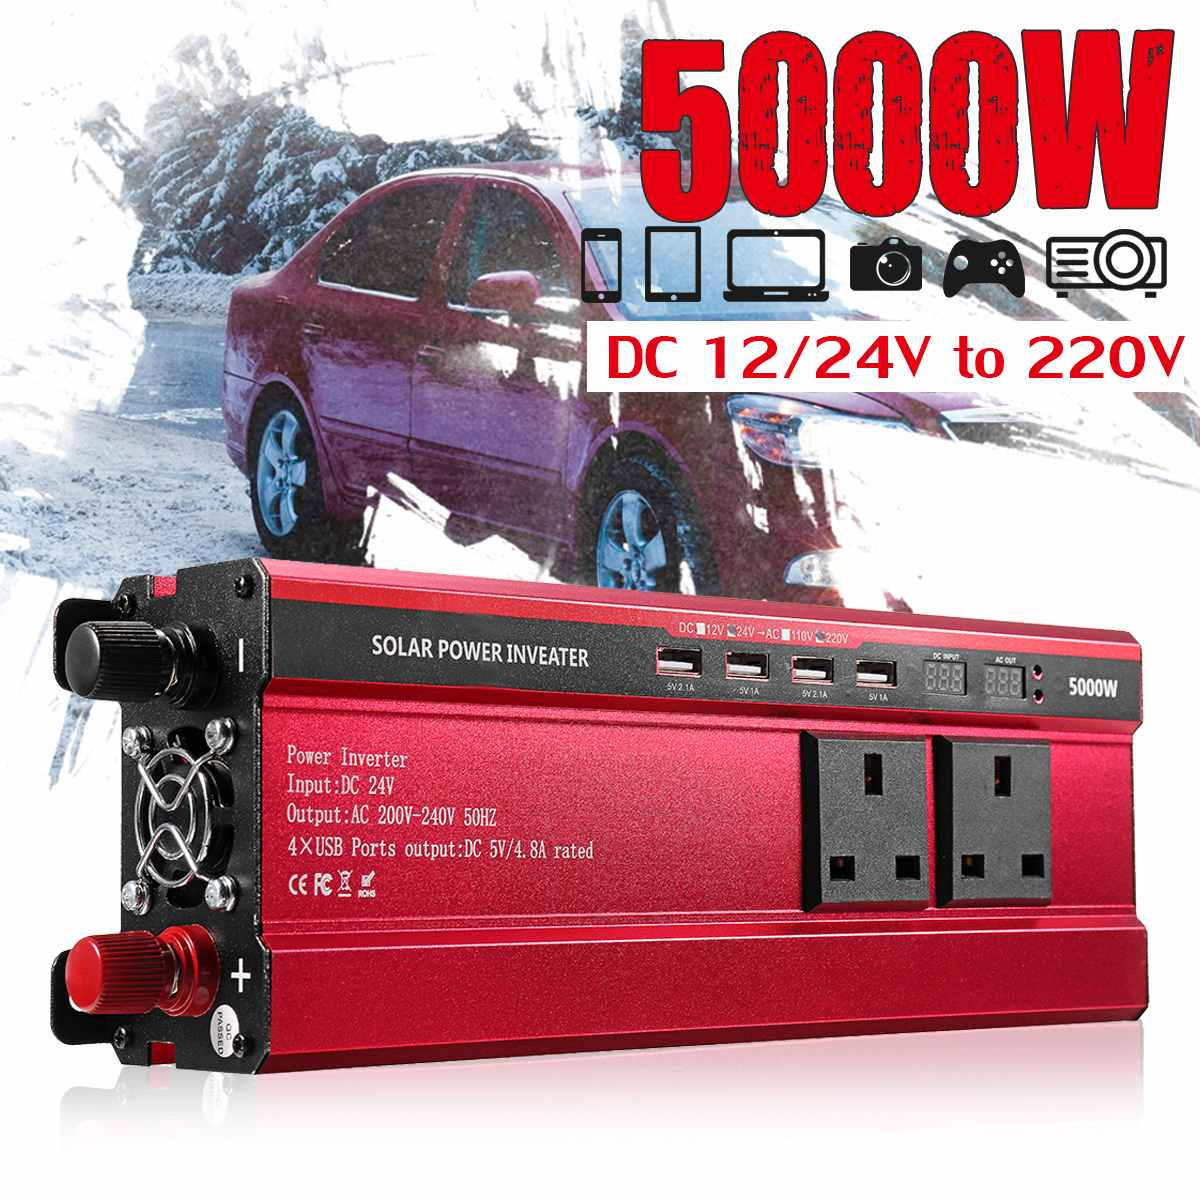 Autoleader 5000W Solar Power Inverter DC 12V/24V To AC 110V/220V Modified Sine Wave Converter For Car And Truck